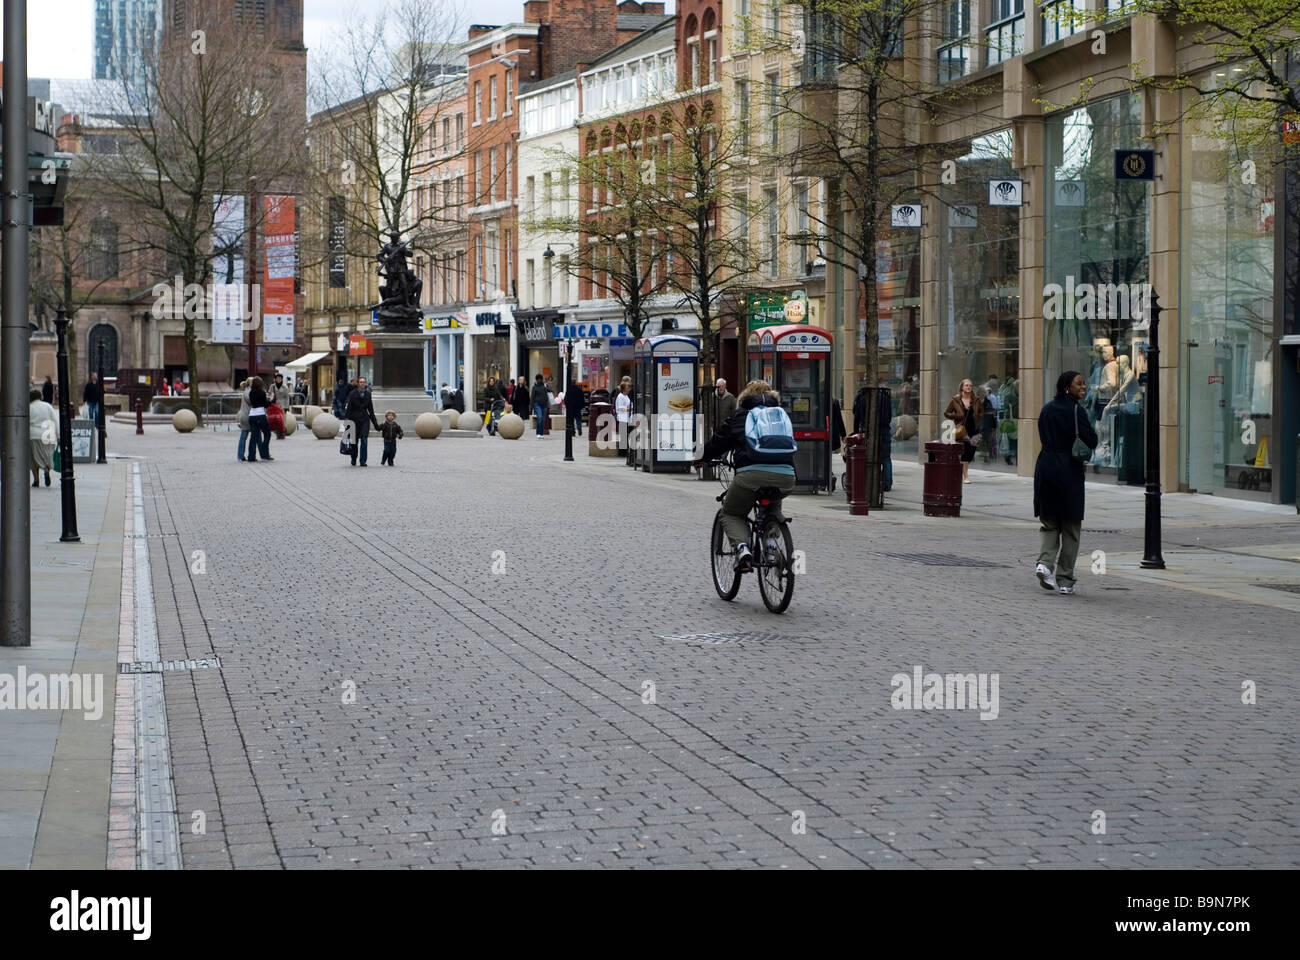 People walking in St.Ann Square Manchester city centre UK - Stock Image